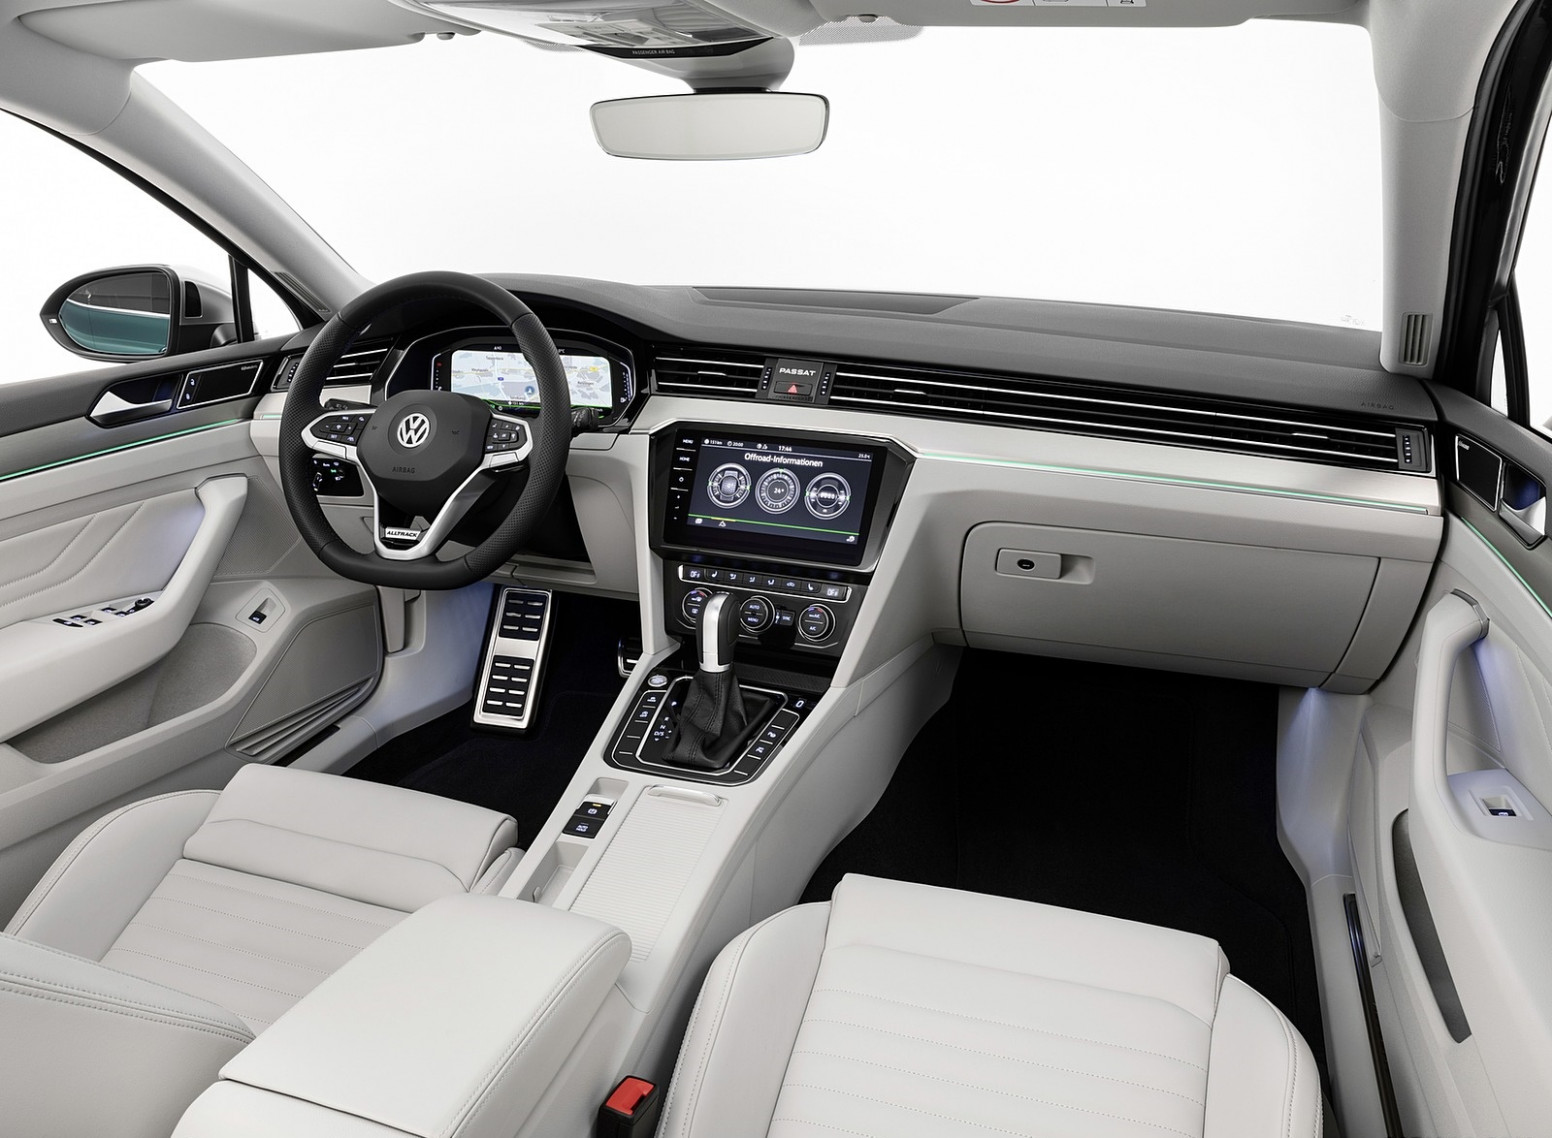 11 Volkswagen Passat Alltrack (EU-Spec) Interior Wallpapers (11 ..